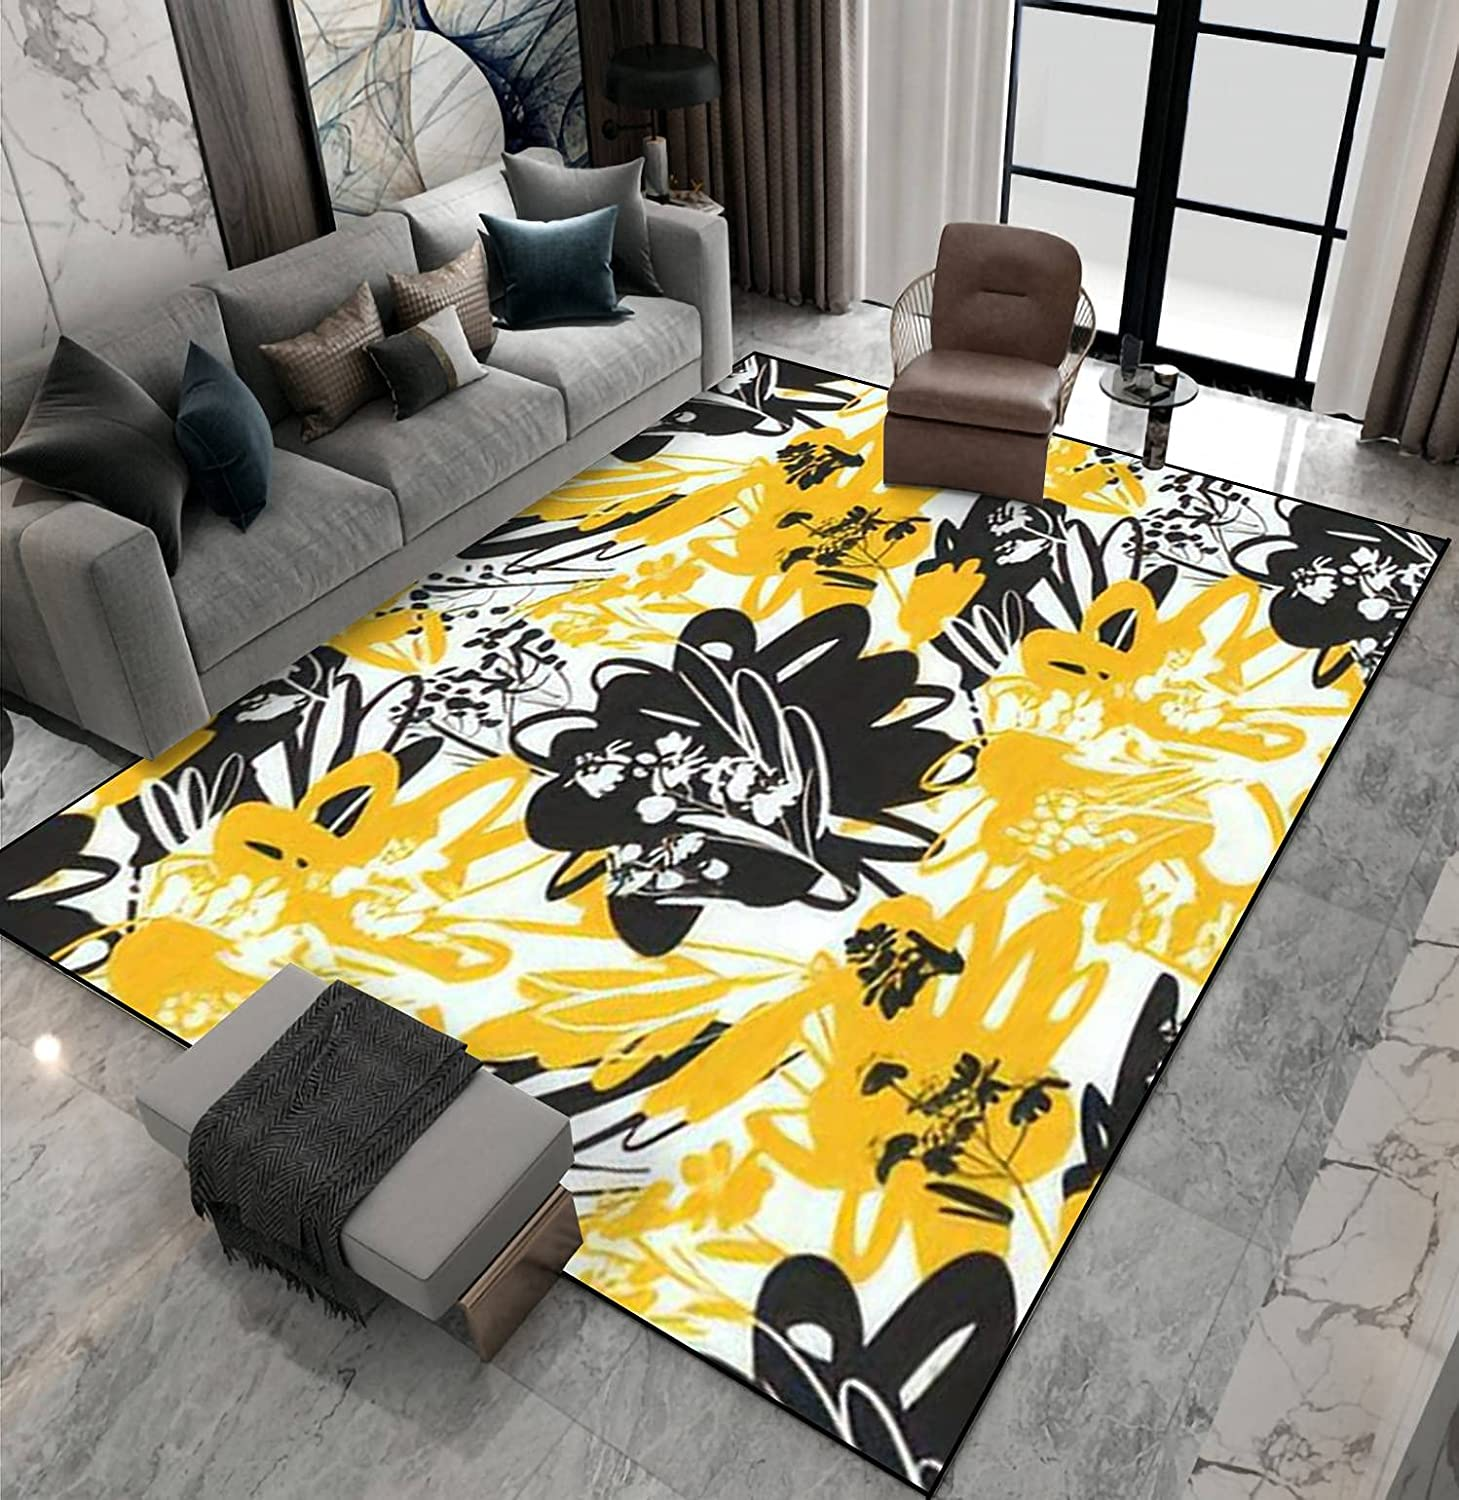 Area Rug Non-Slip Floor Mat Hot Flo Summer Yellow Fees free Mood Black and Super Special SALE held